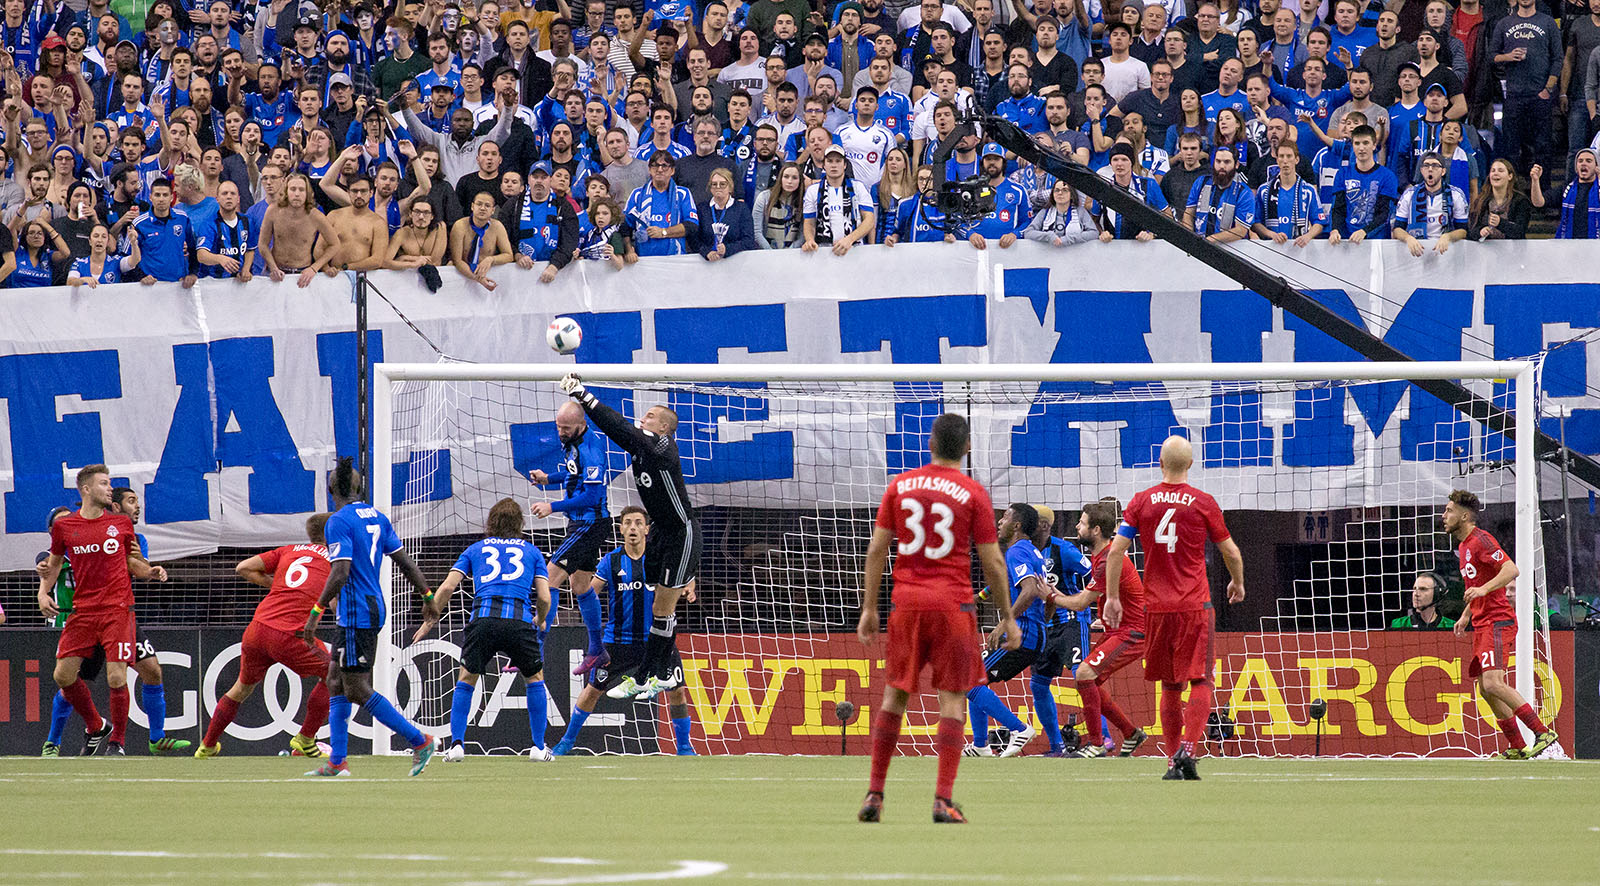 Montreal supporters look on as Montreal Goalkeeper Evan Bush punches the ball out of the 6 yard box during an Eastern Conference Final match in 2016. Image by Dennis Marciniak of denMAR Media.